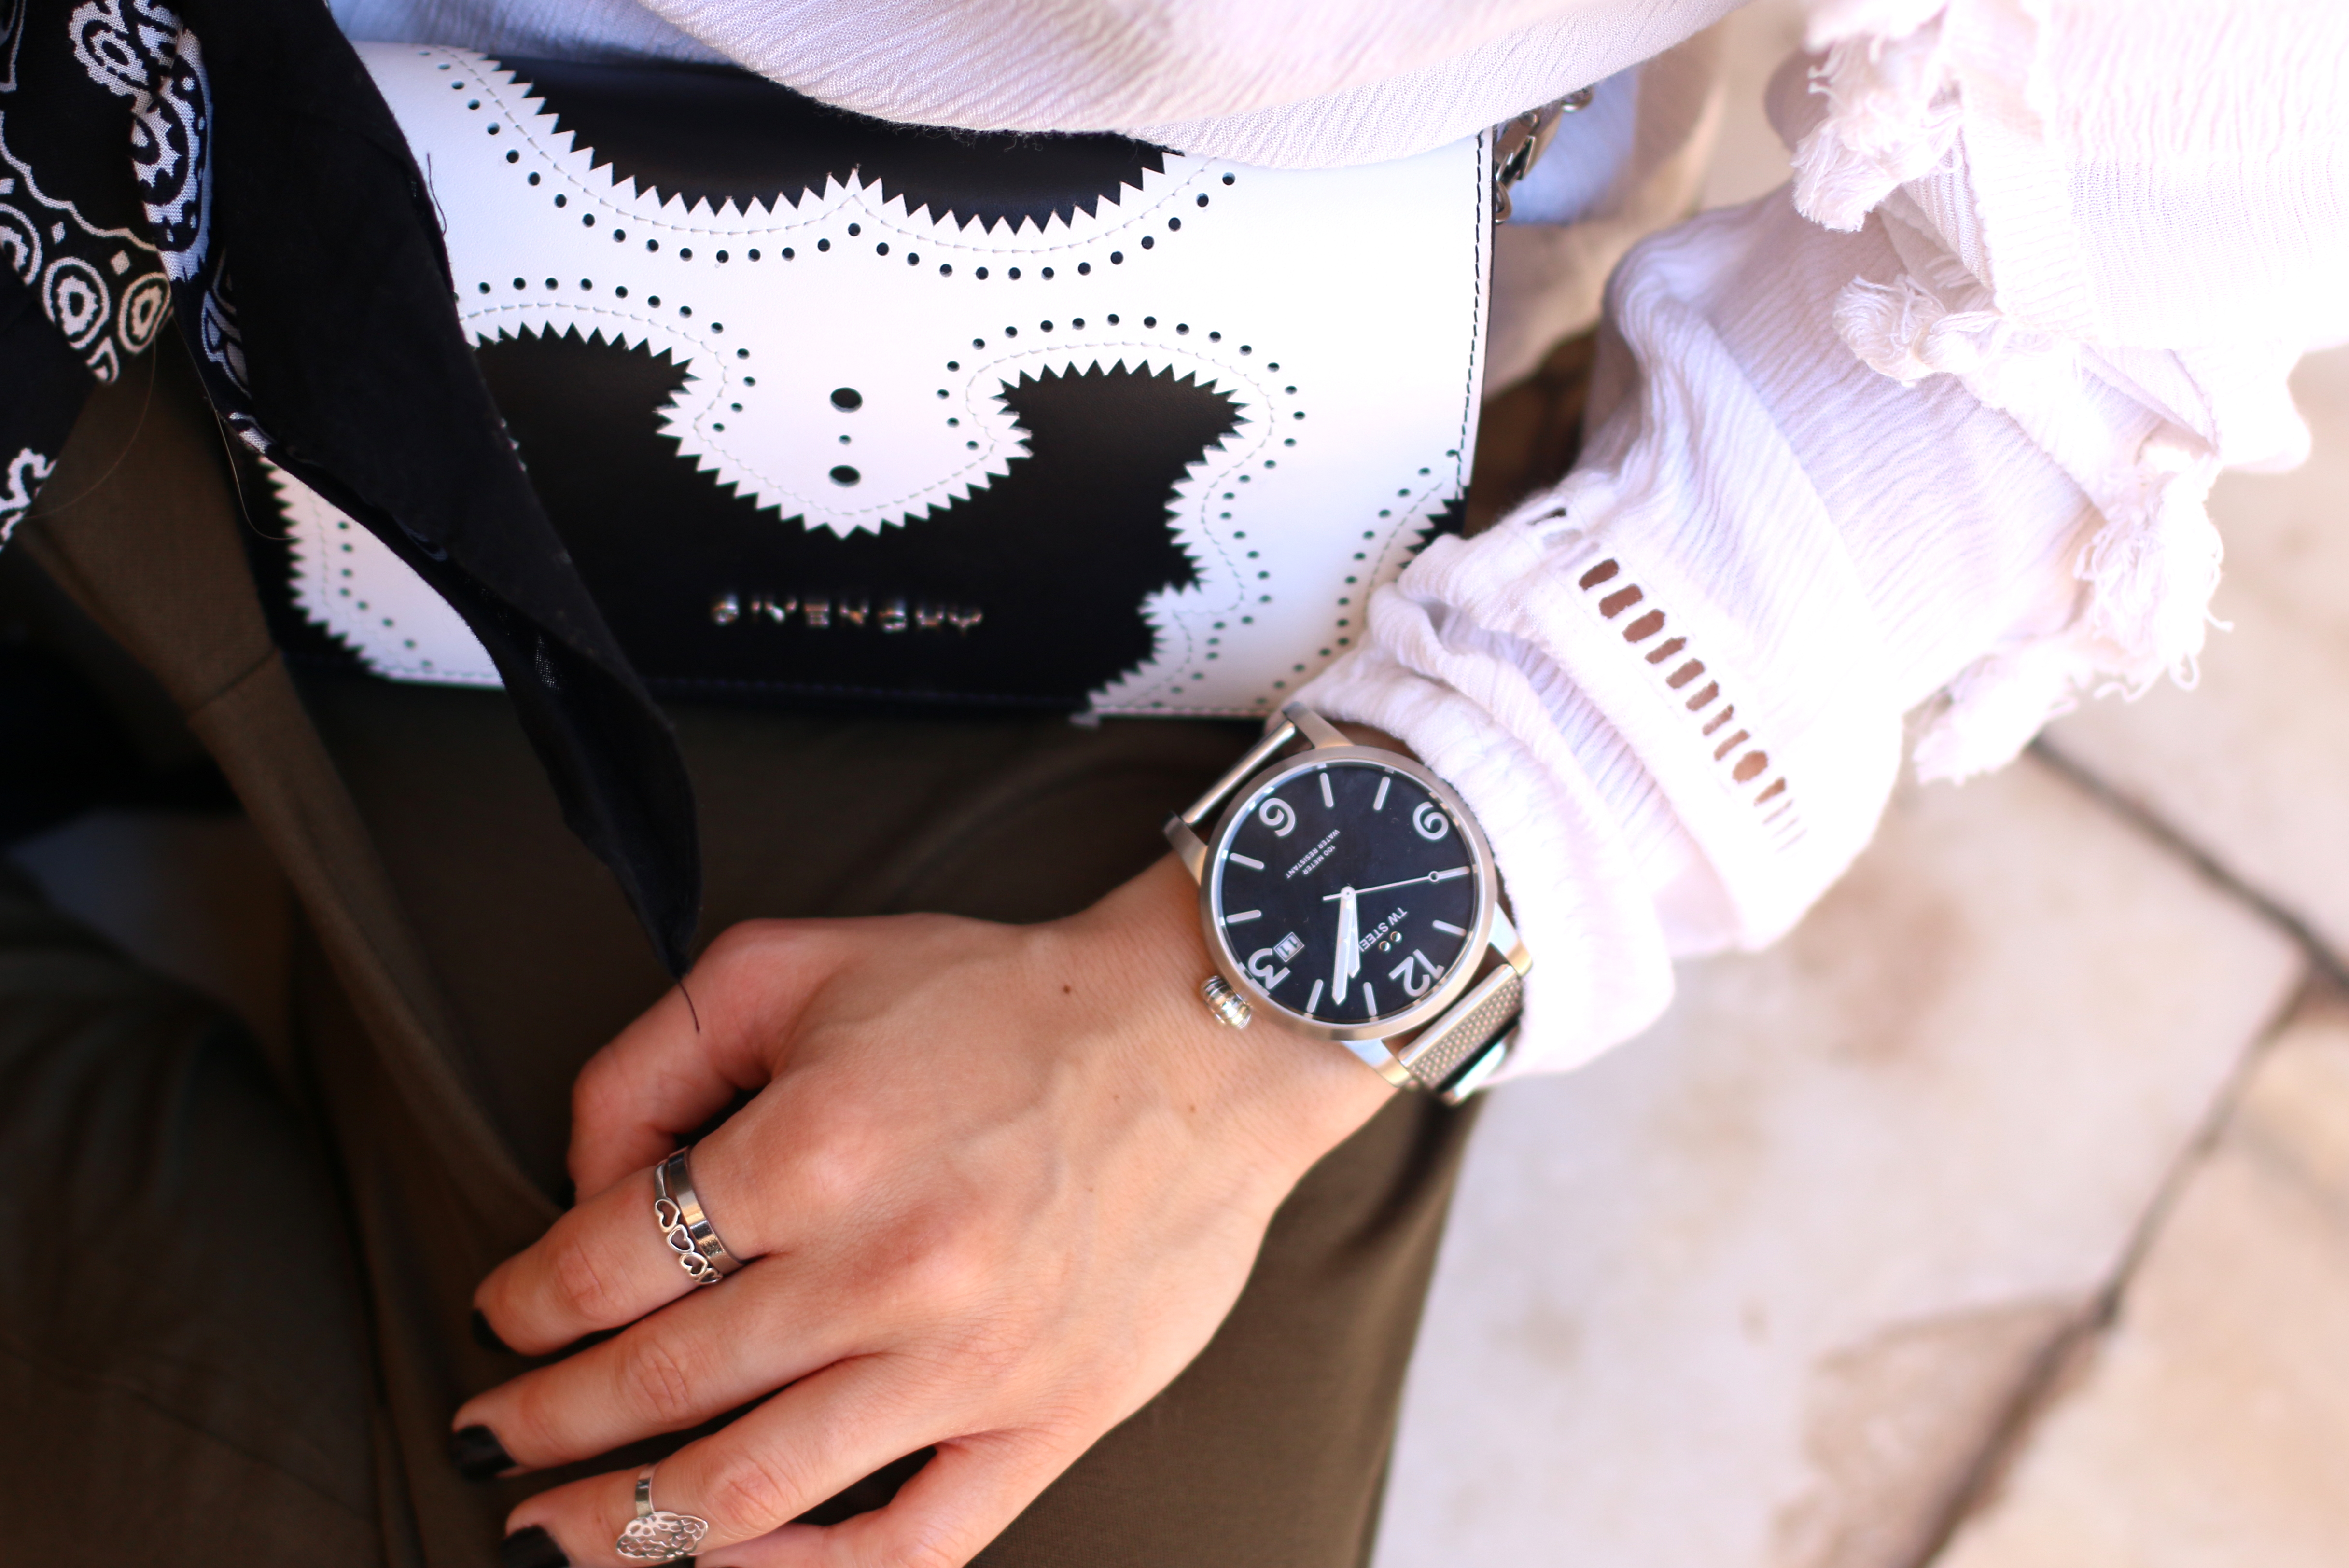 tw steel maverick watch fashionblogger givenchy bag marrakech style